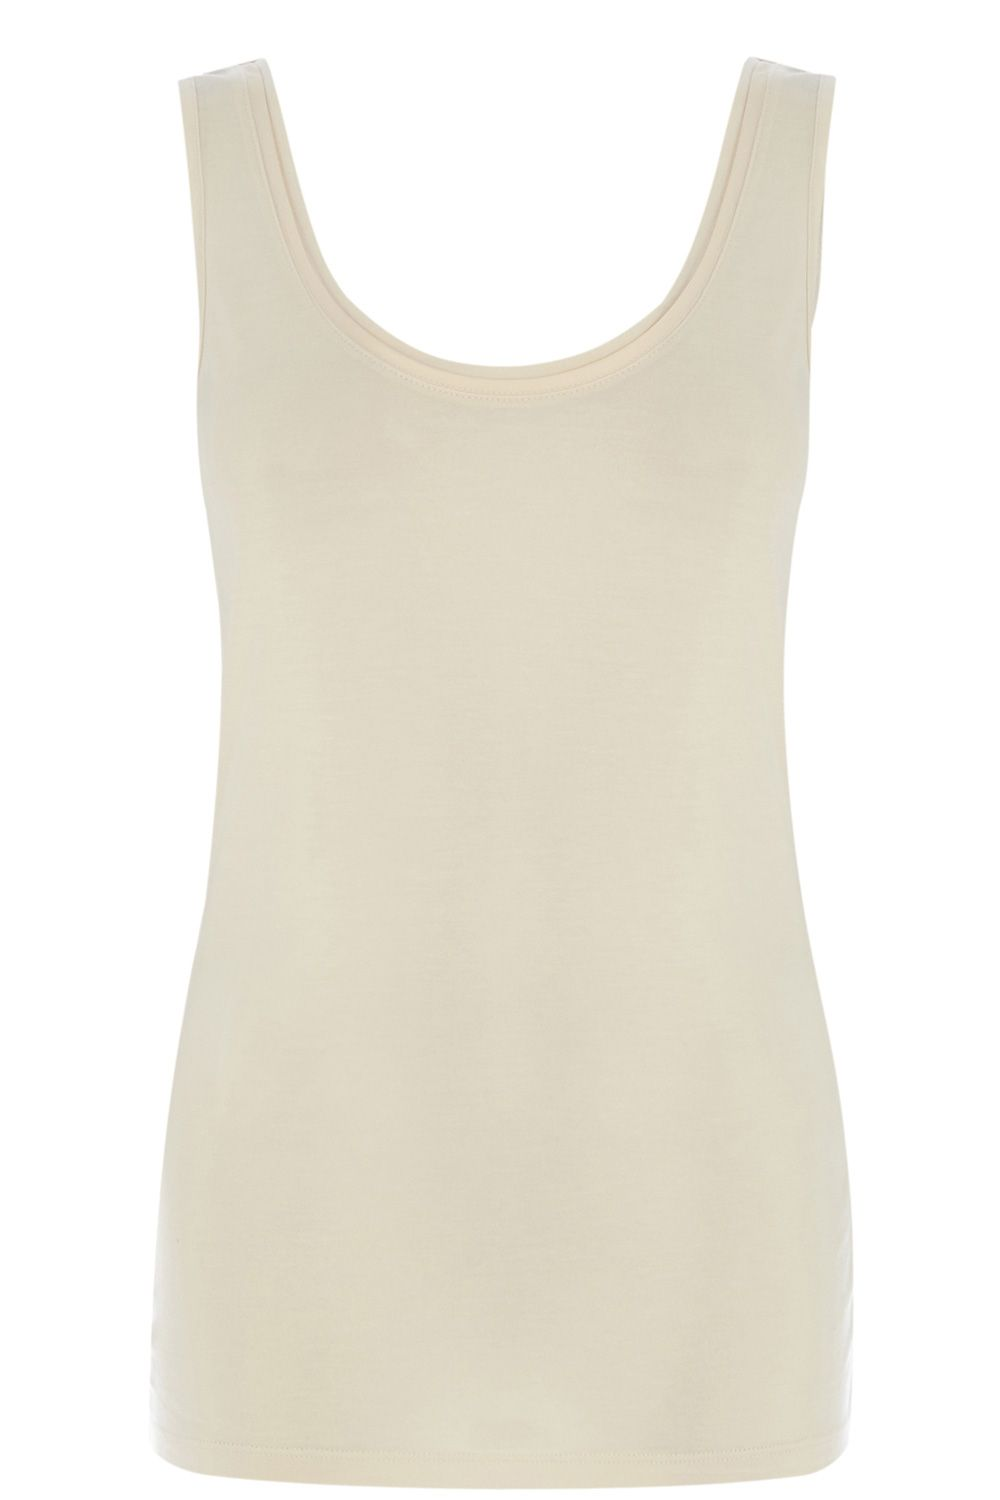 Scoop back double trim vest top